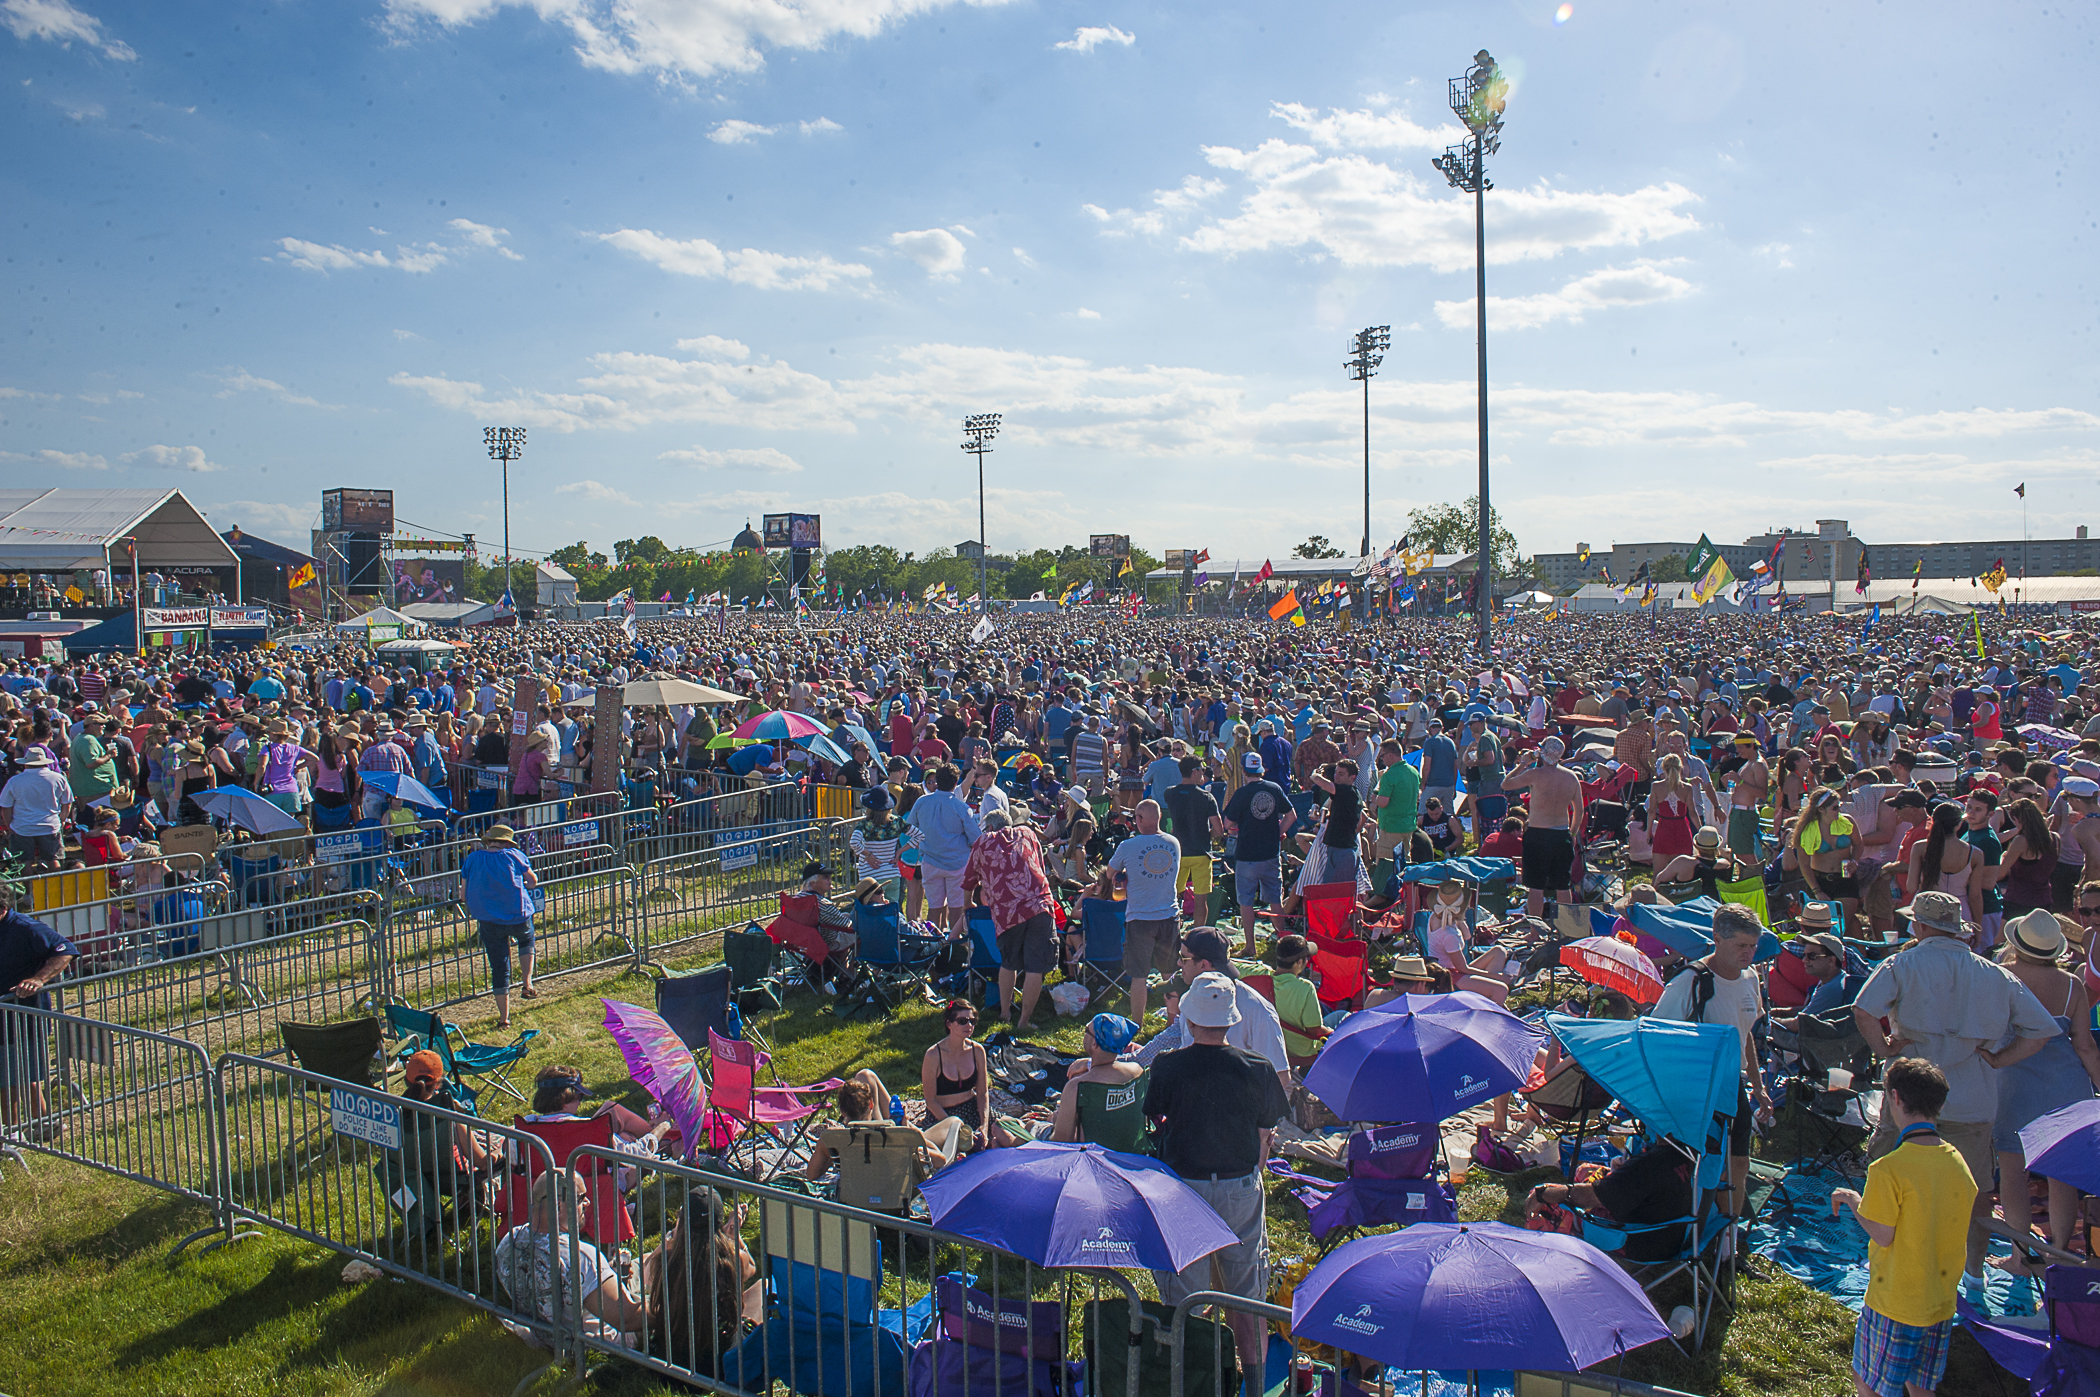 How Jazz Fest Evolved from Local Celebration to Major Production